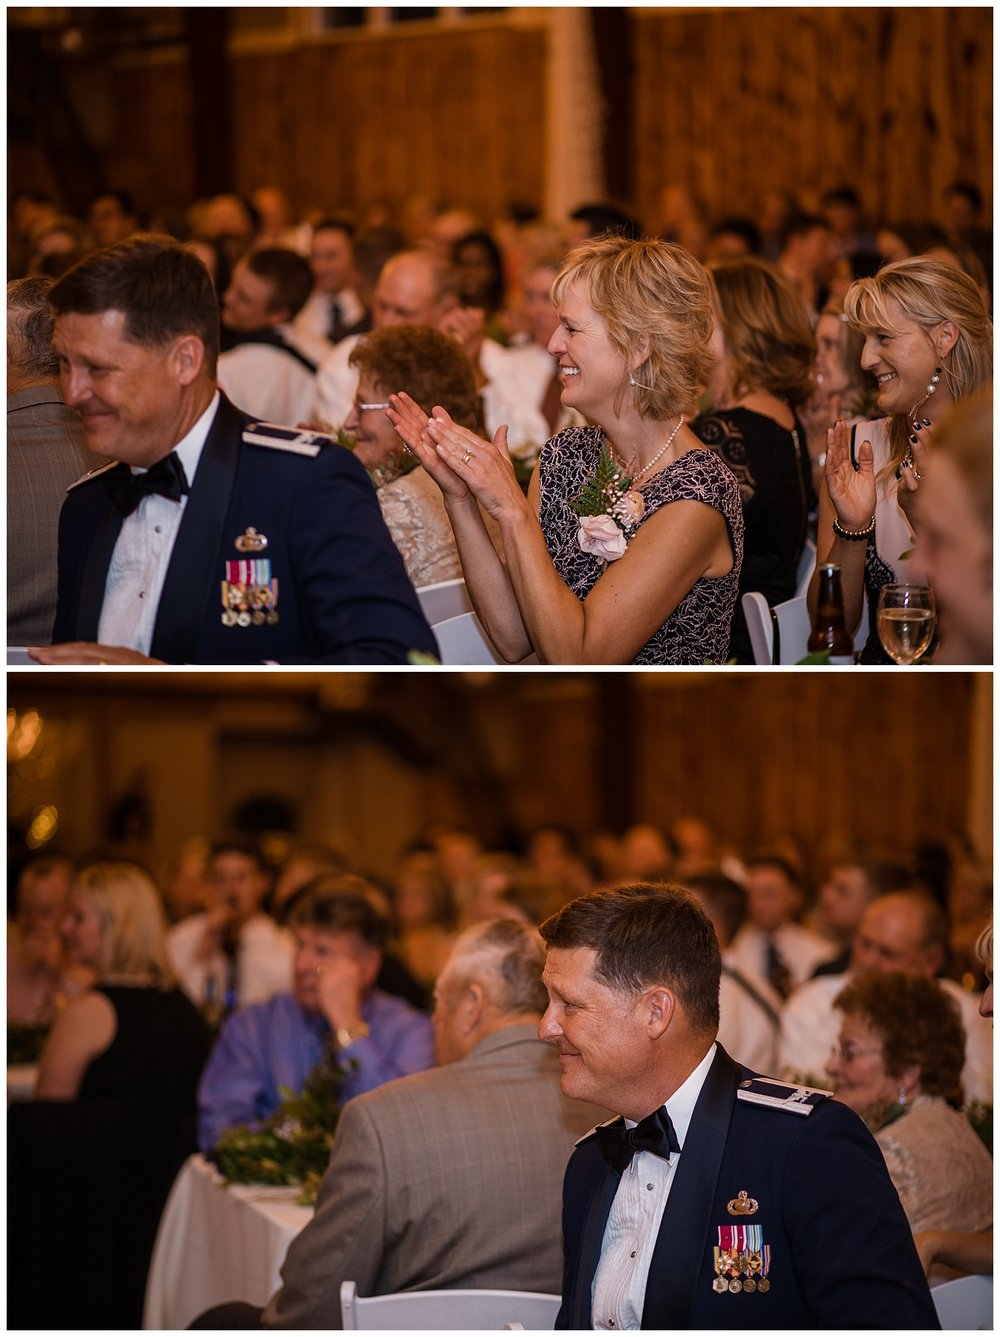 Military Wedding, wedding reception guest photos, smiling parents, Colorado Wedding Photographer, Denver Wedding Photographer, Denver Elopement Photographer, Colorado Elopement Photographer, Rocky Mountain Wedding Photographer, Downtown Denver Photographer, colorado springs wedding photographer